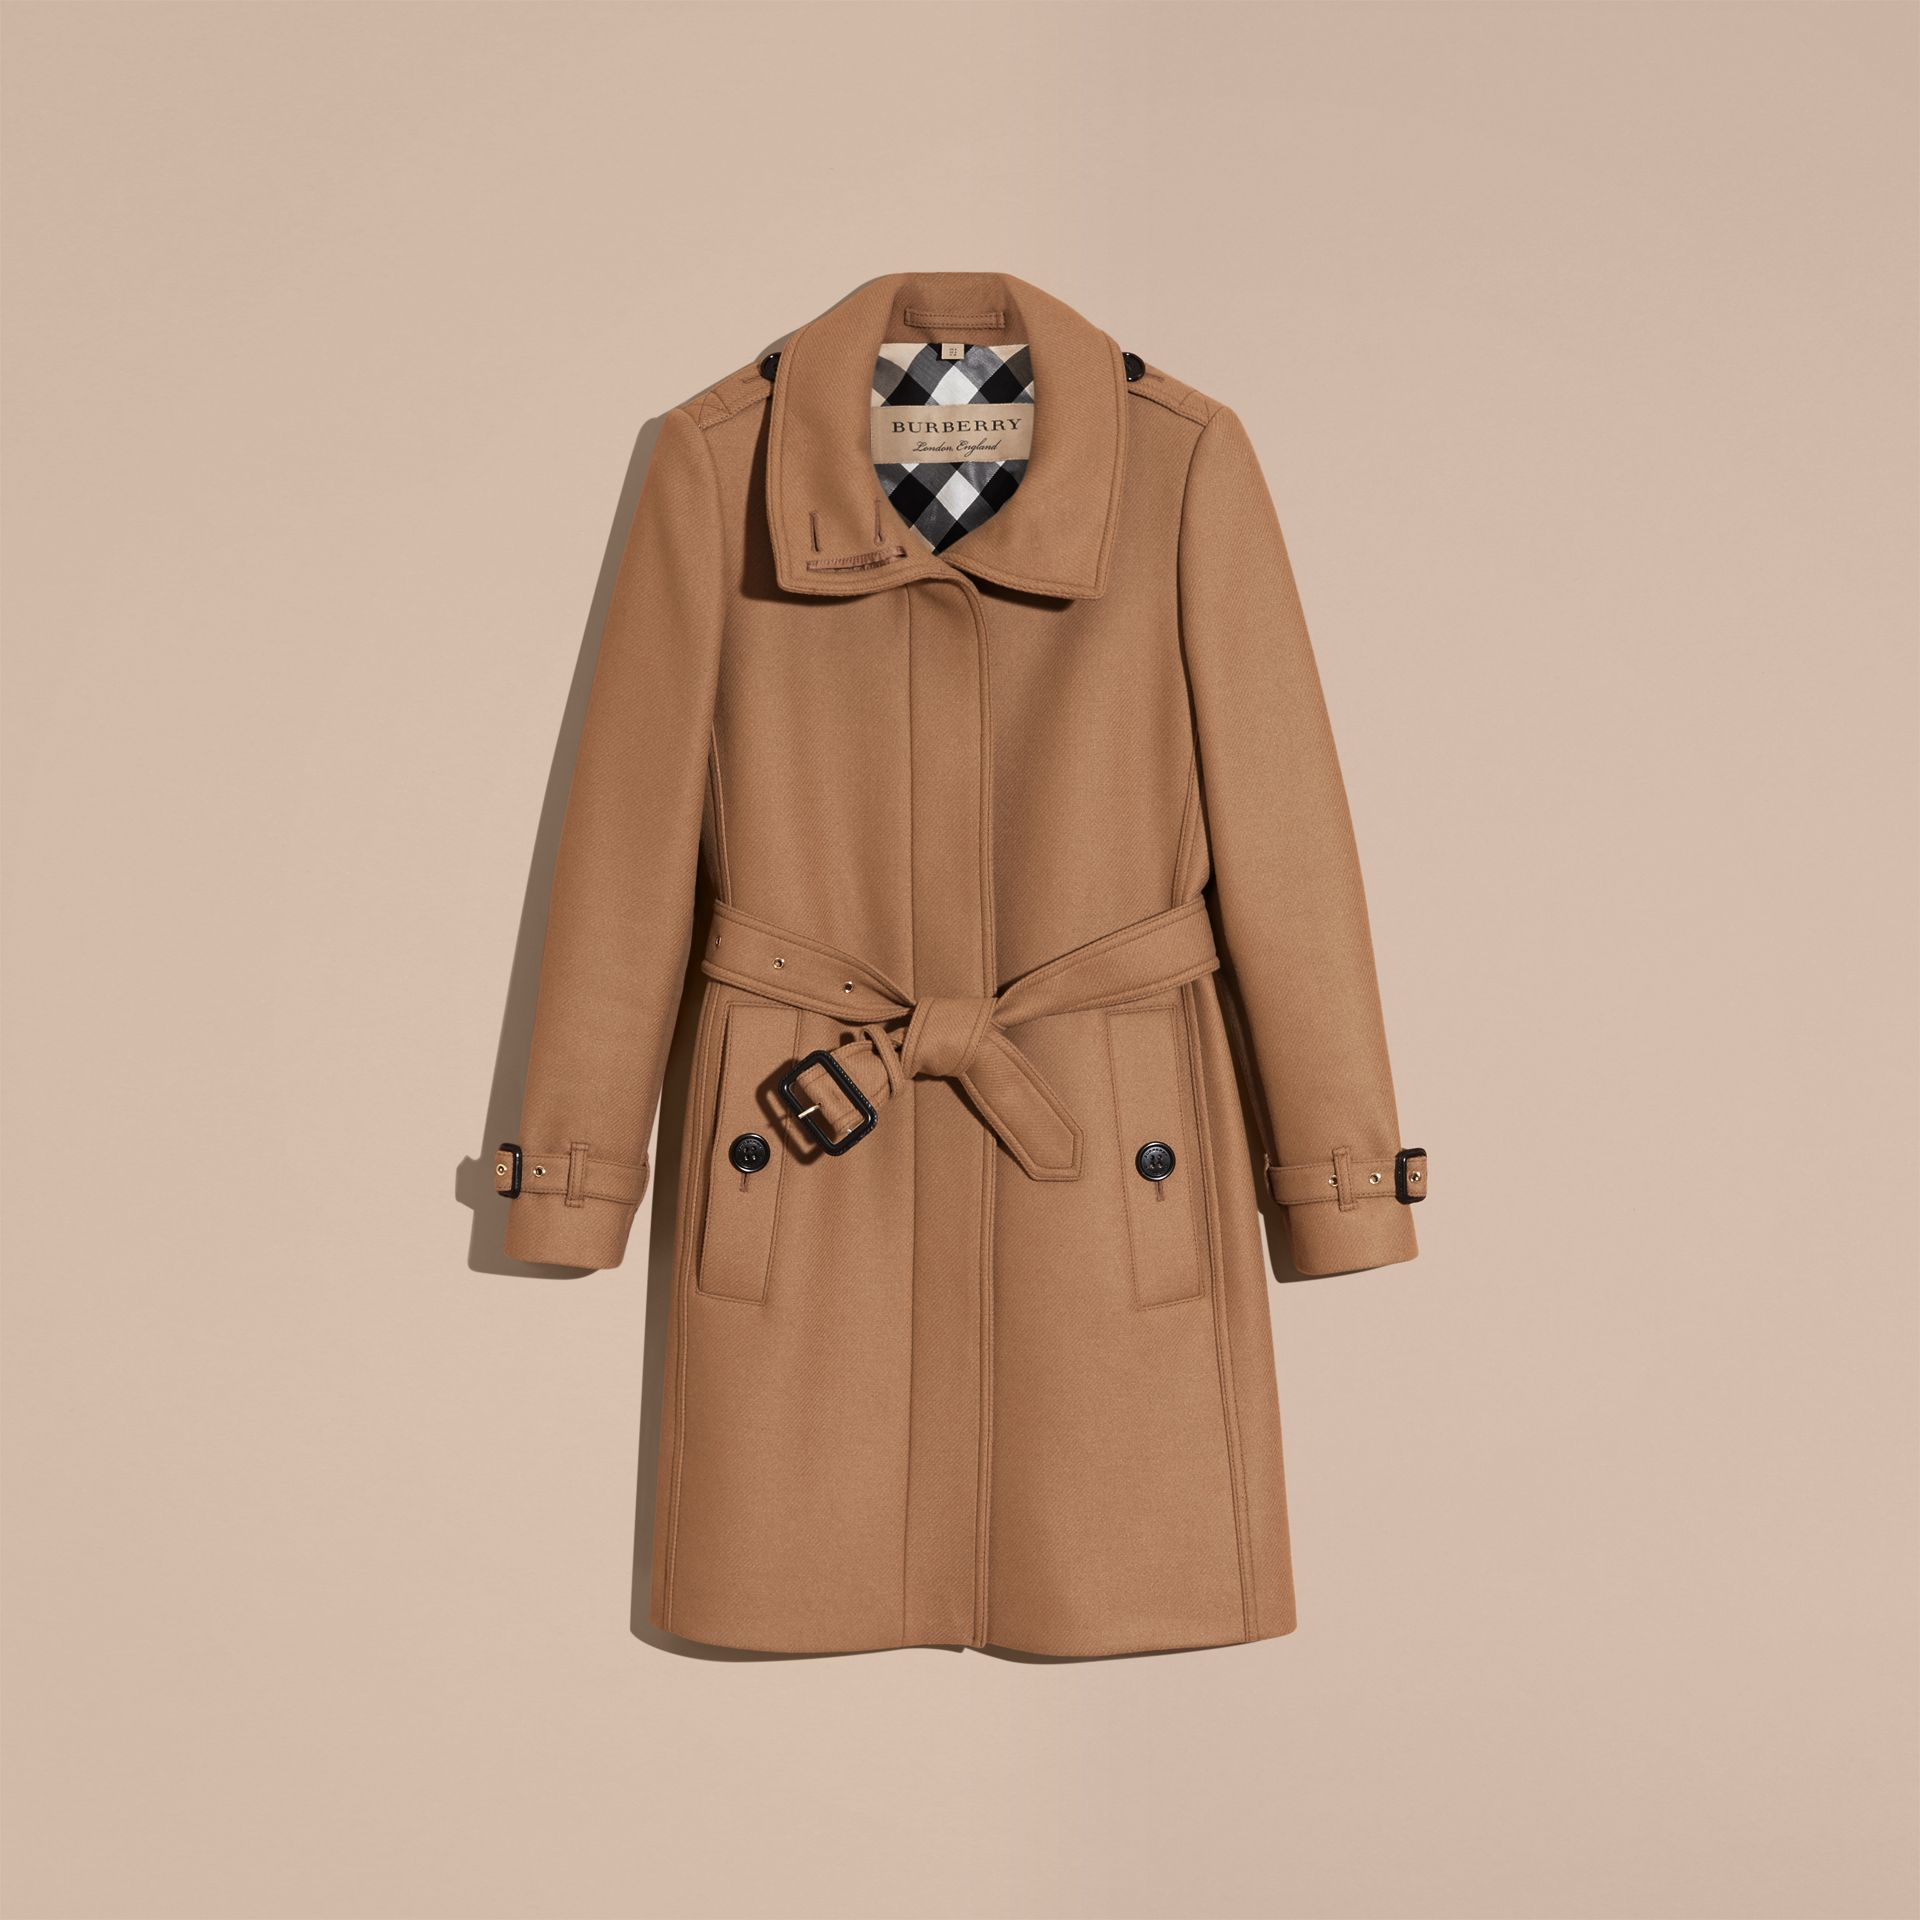 Manteau en laine technique et cachemire avec col entonnoir Camel - photo de la galerie 4